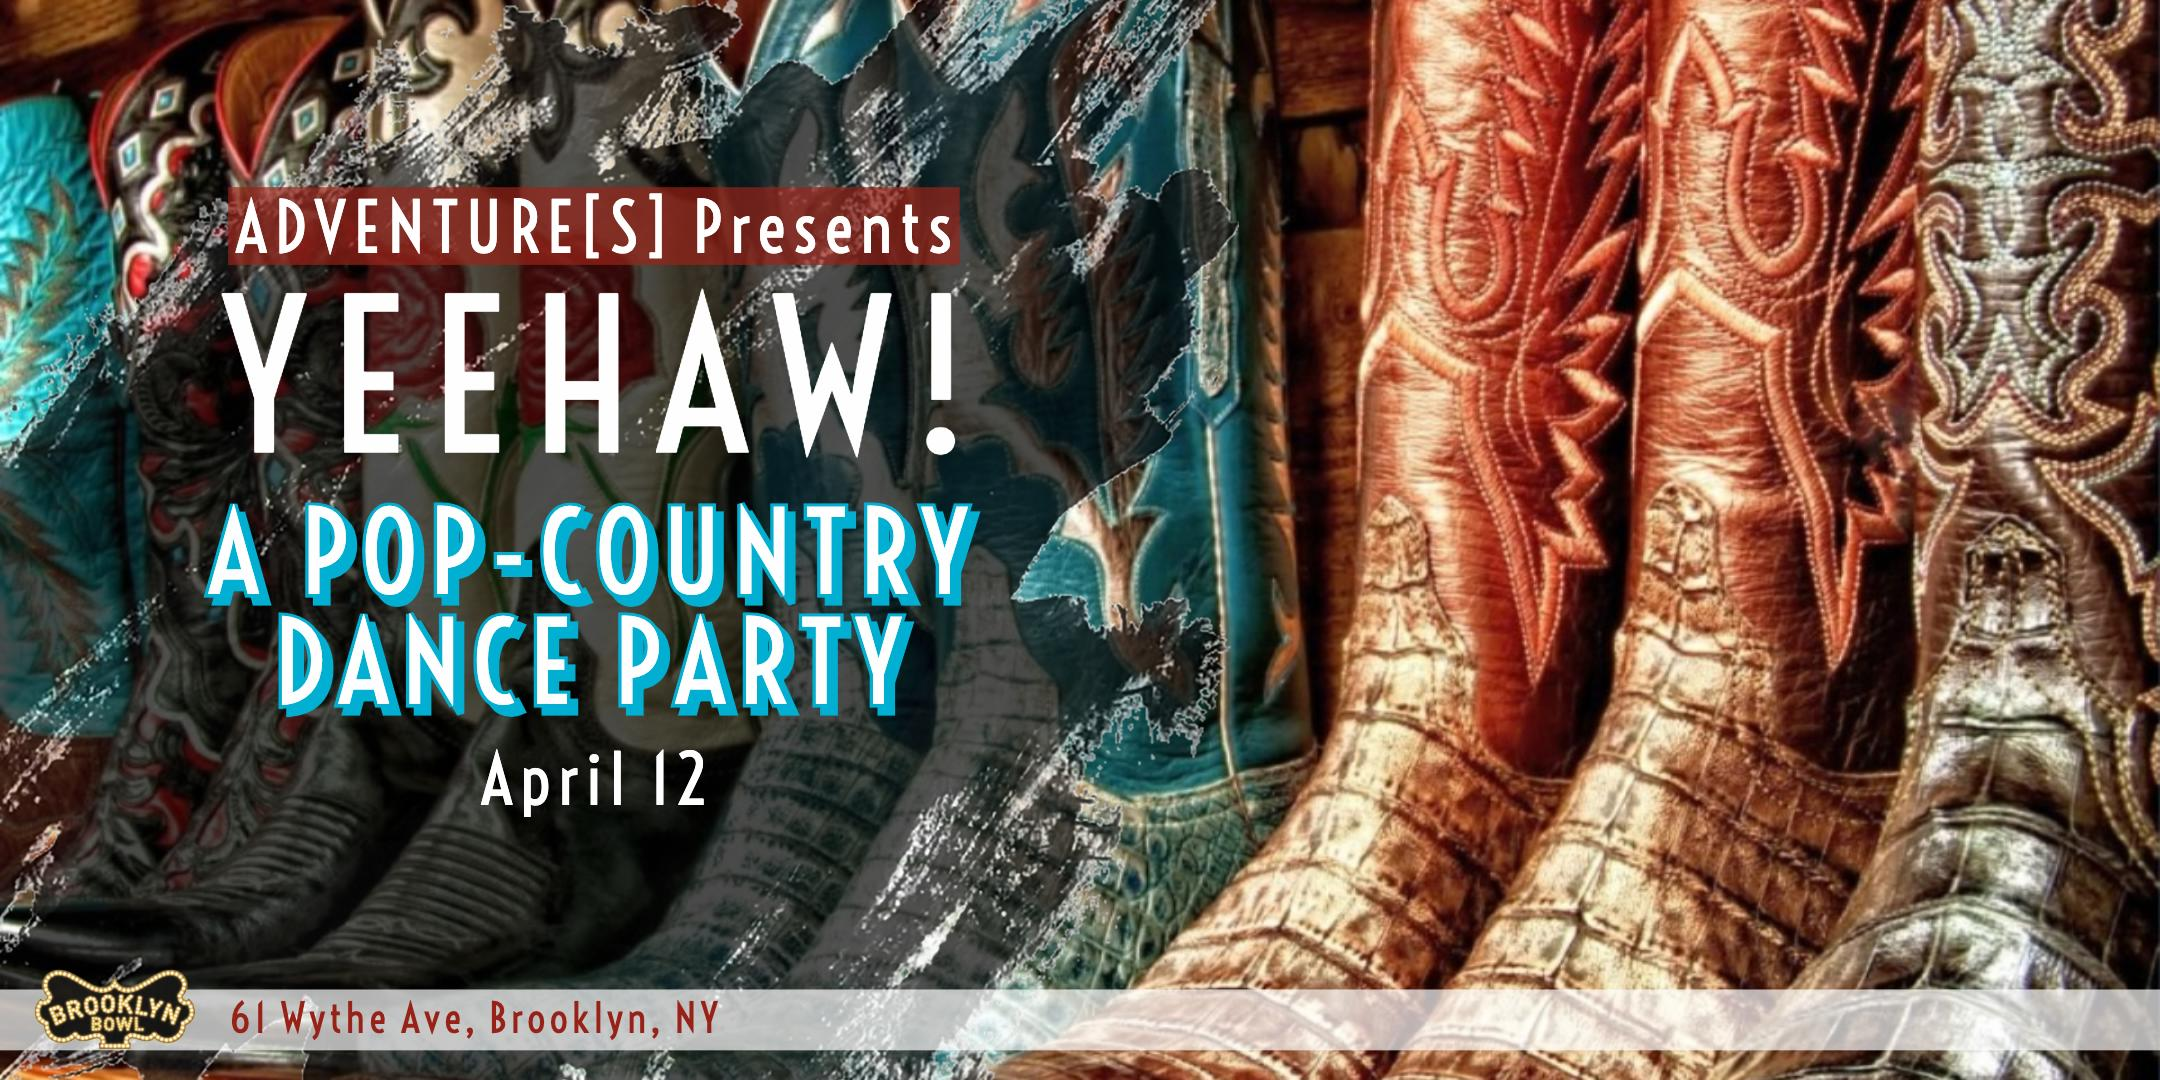 YEEHAW! A Pop-Country Dance Party